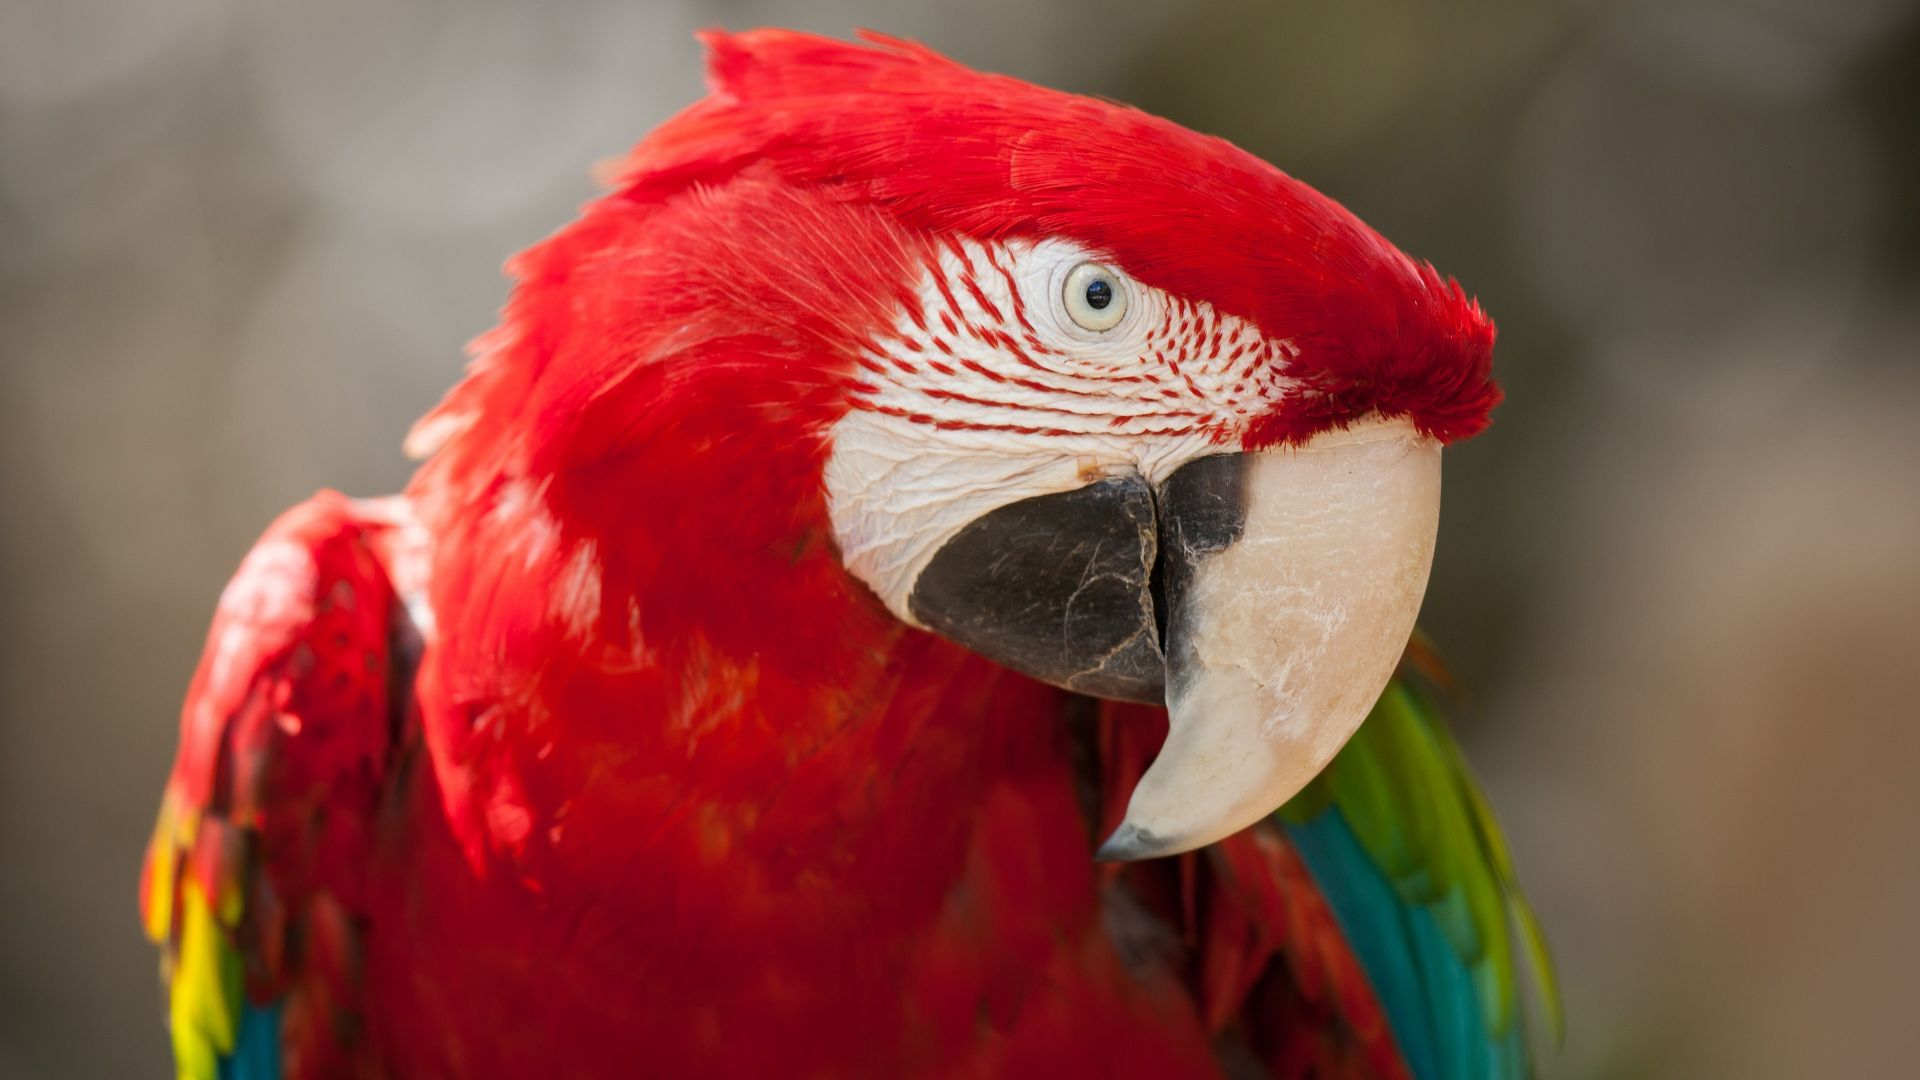 Macaw parrot, tropical bird, red